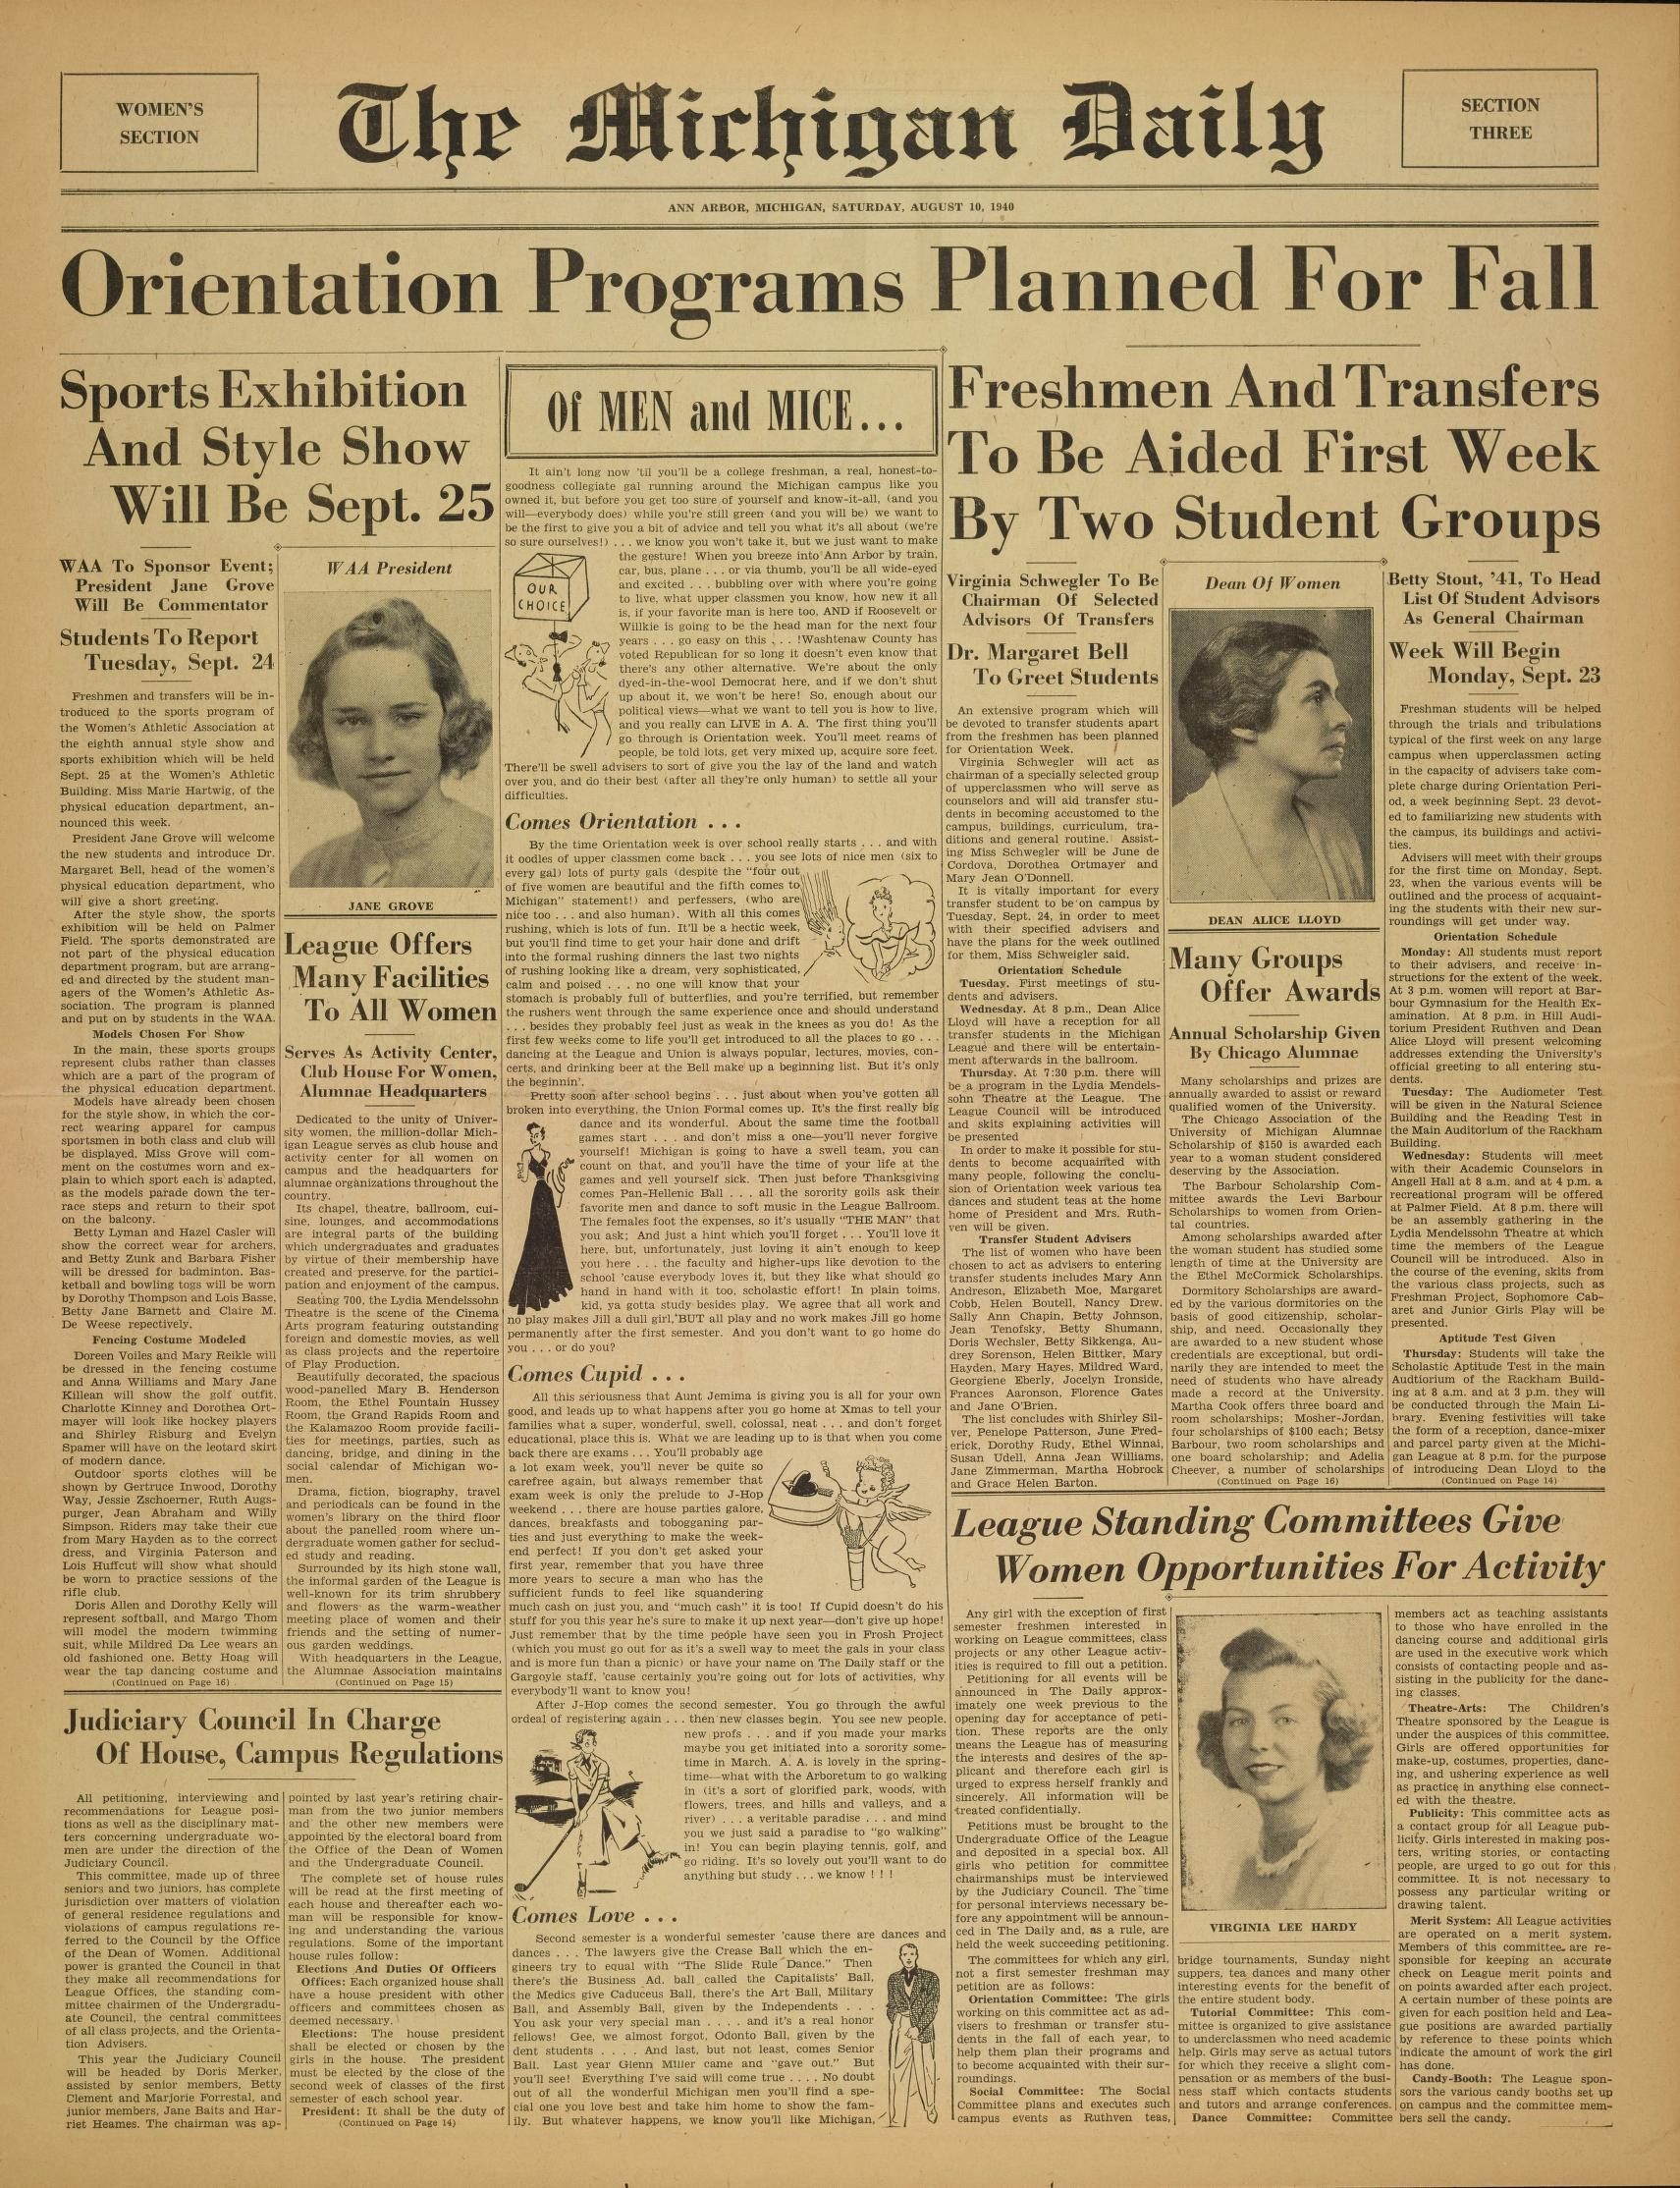 Michigan Daily Digital Archives August 10 1940 vol 50 iss 41